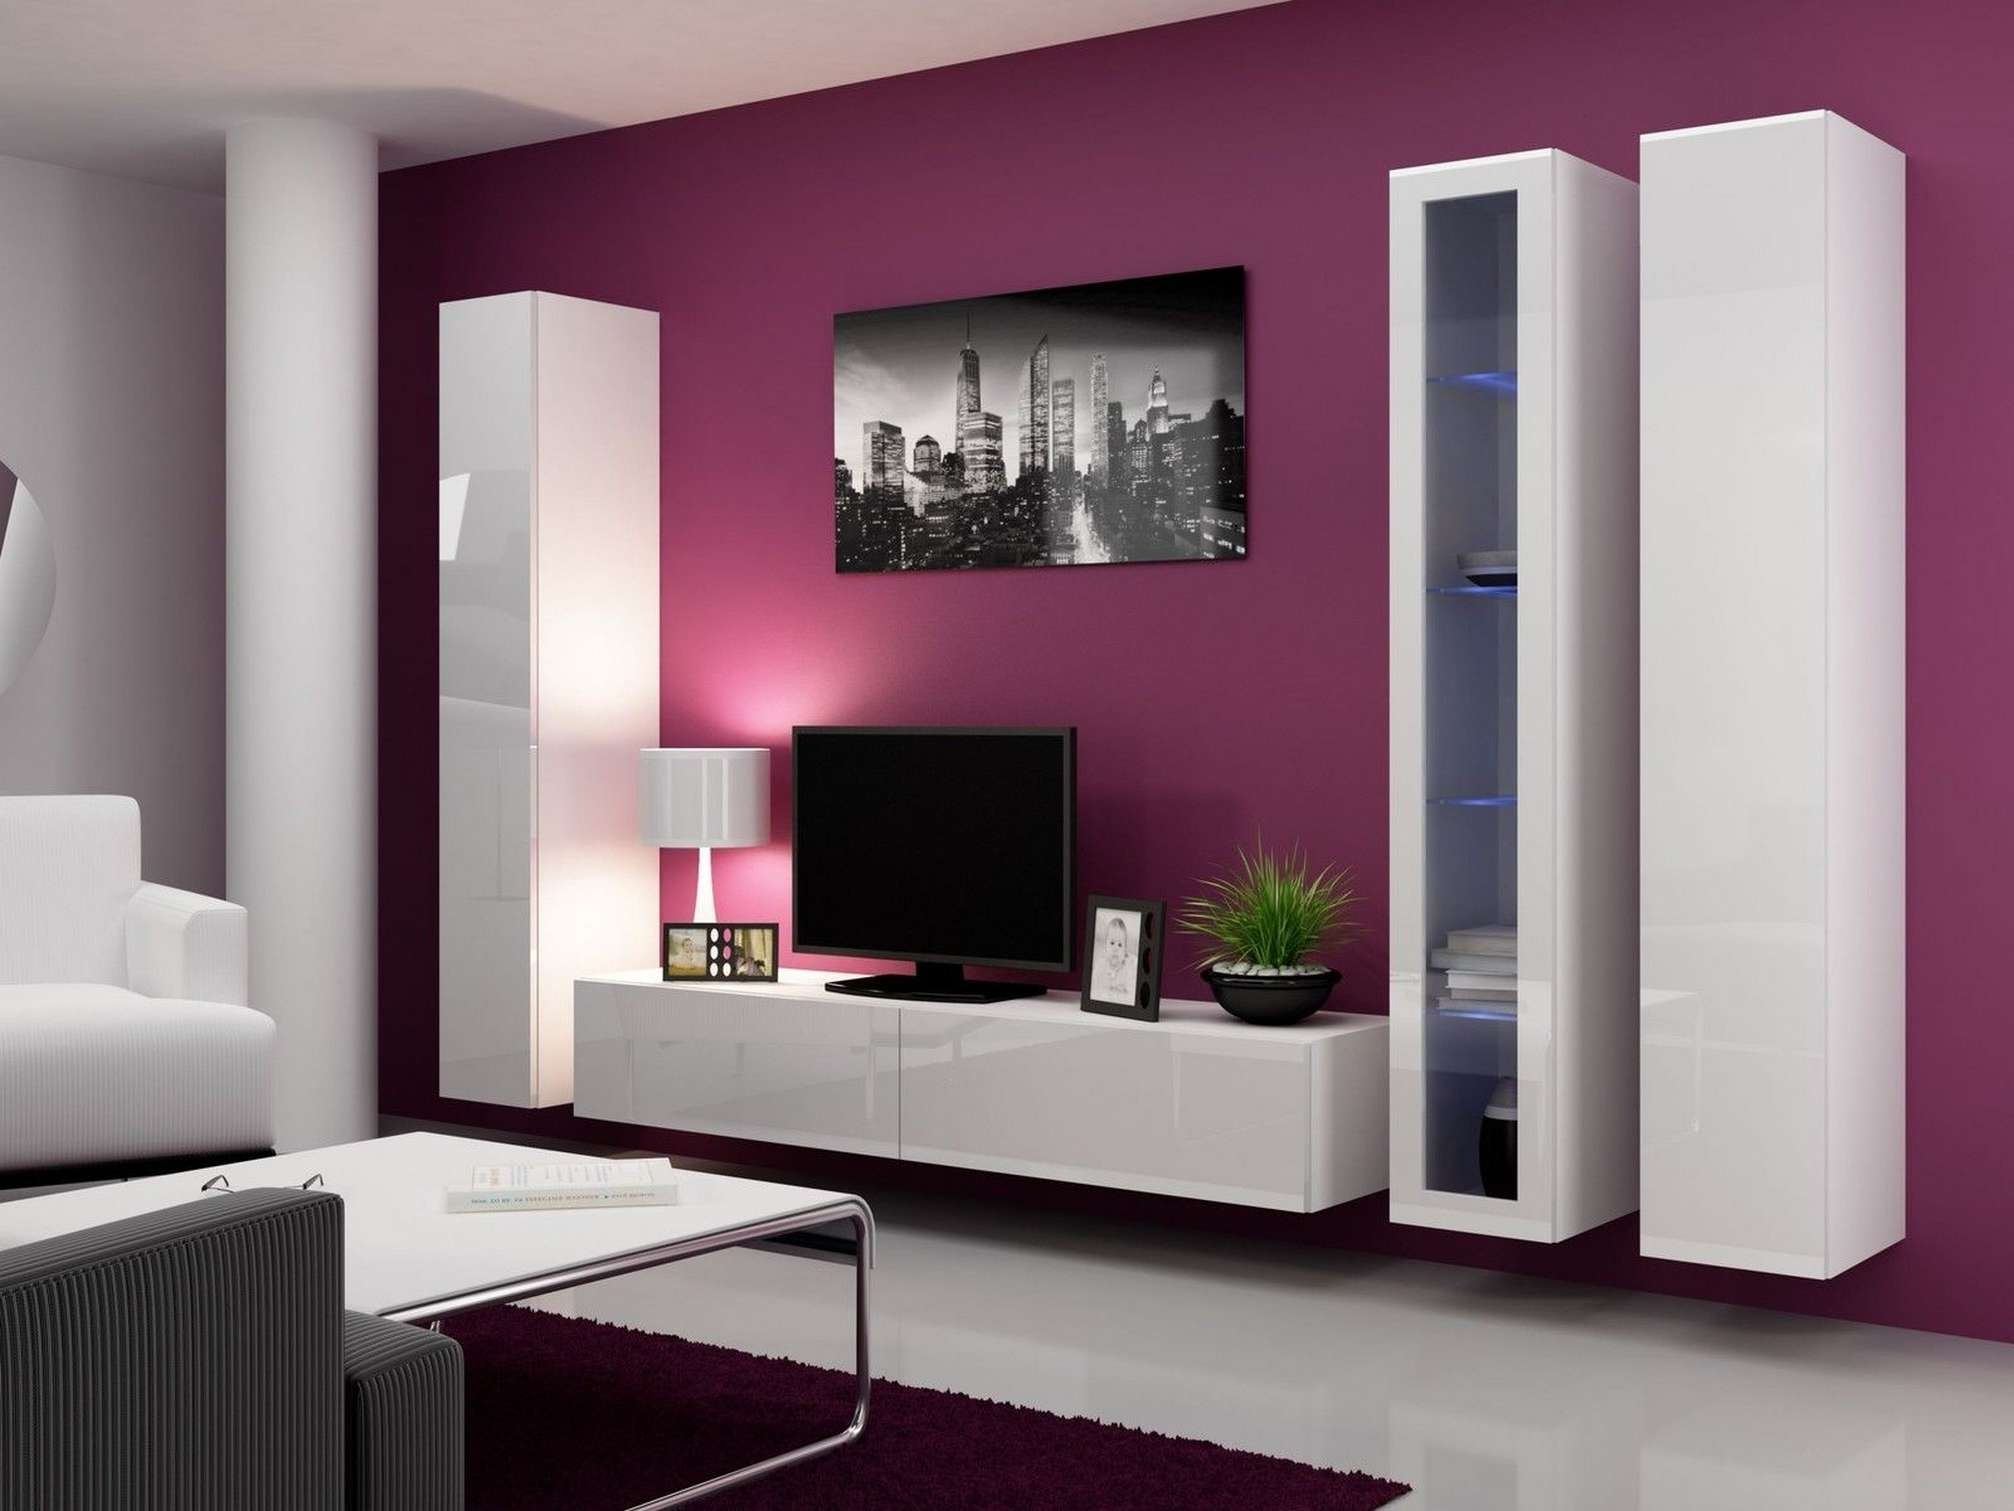 Contemporary White Floating Tv Stands With Media Shelving Attached Inside Full Wall Tv Cabinets (View 5 of 20)